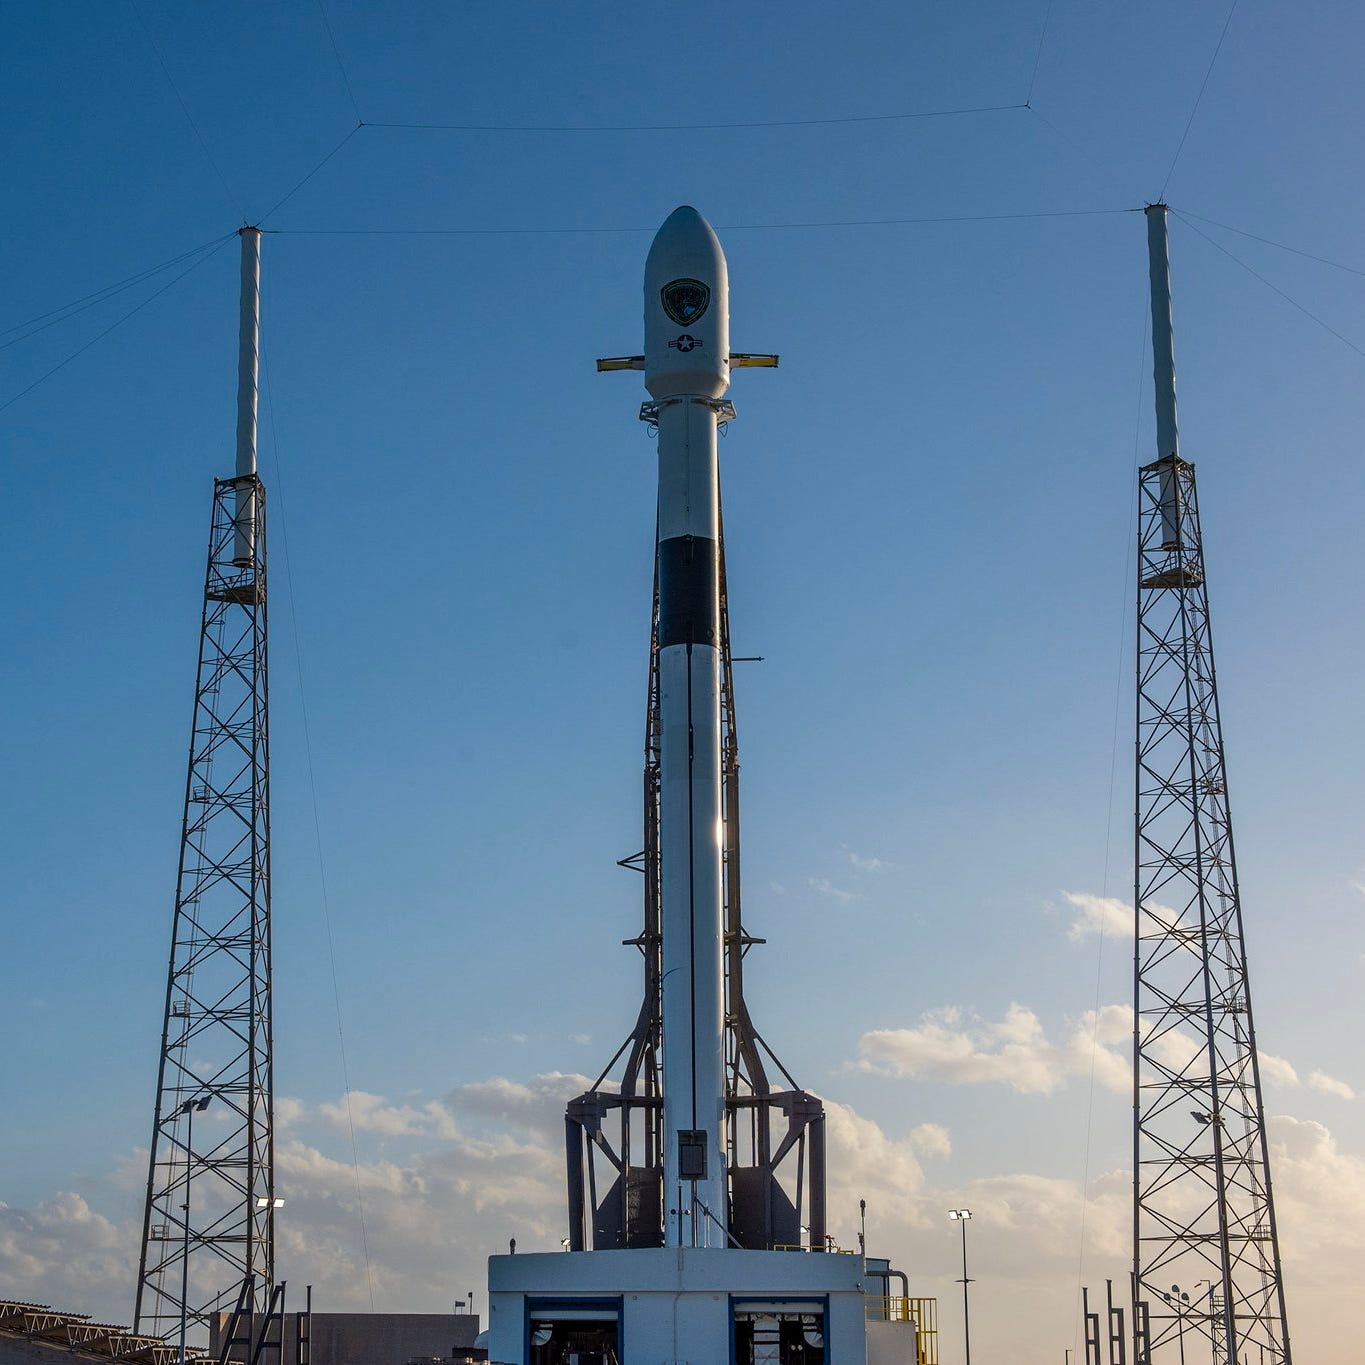 SpaceX first Florida rocket launch of 2019: 'Launch drought' is hopefully over